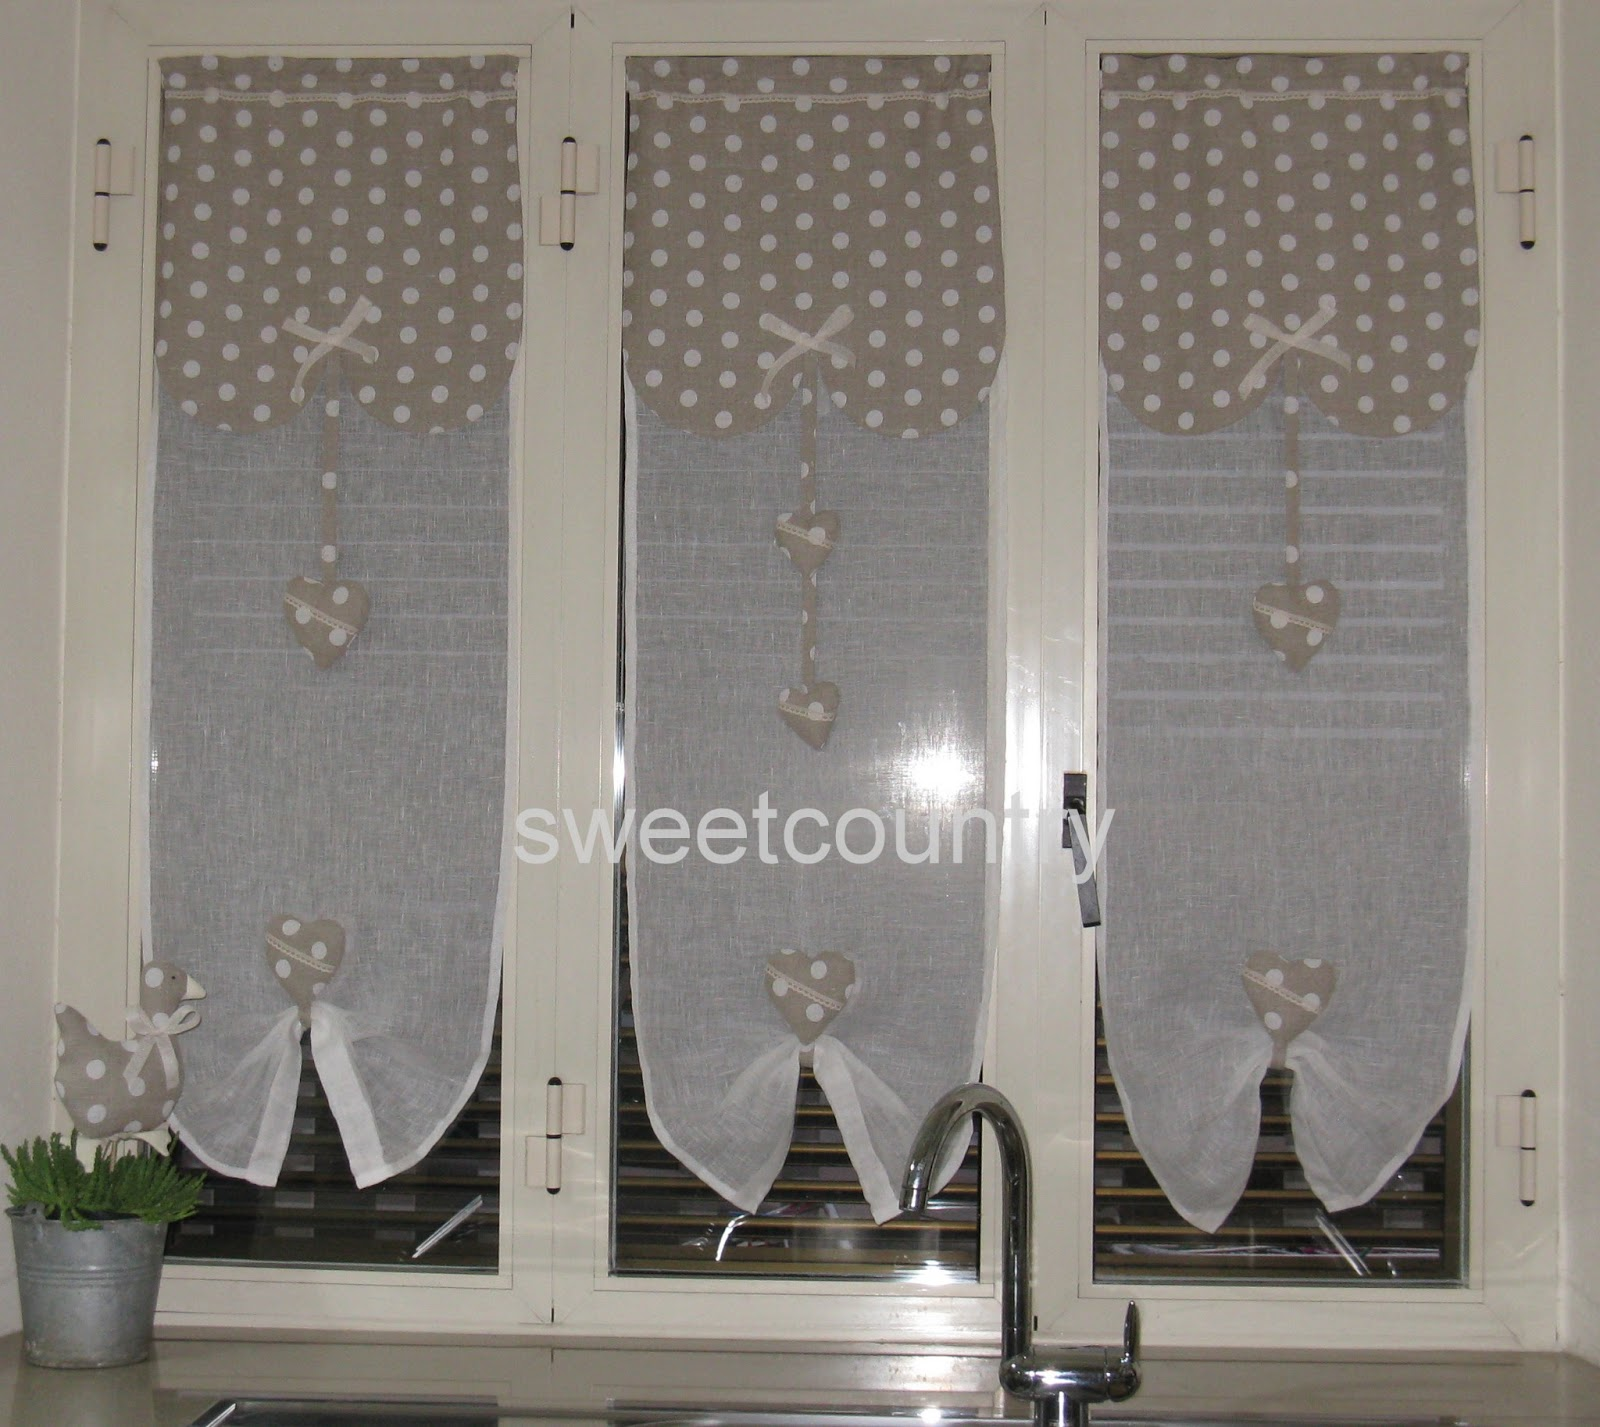 Sweetcountry tende country - Tende moderne cucina ...